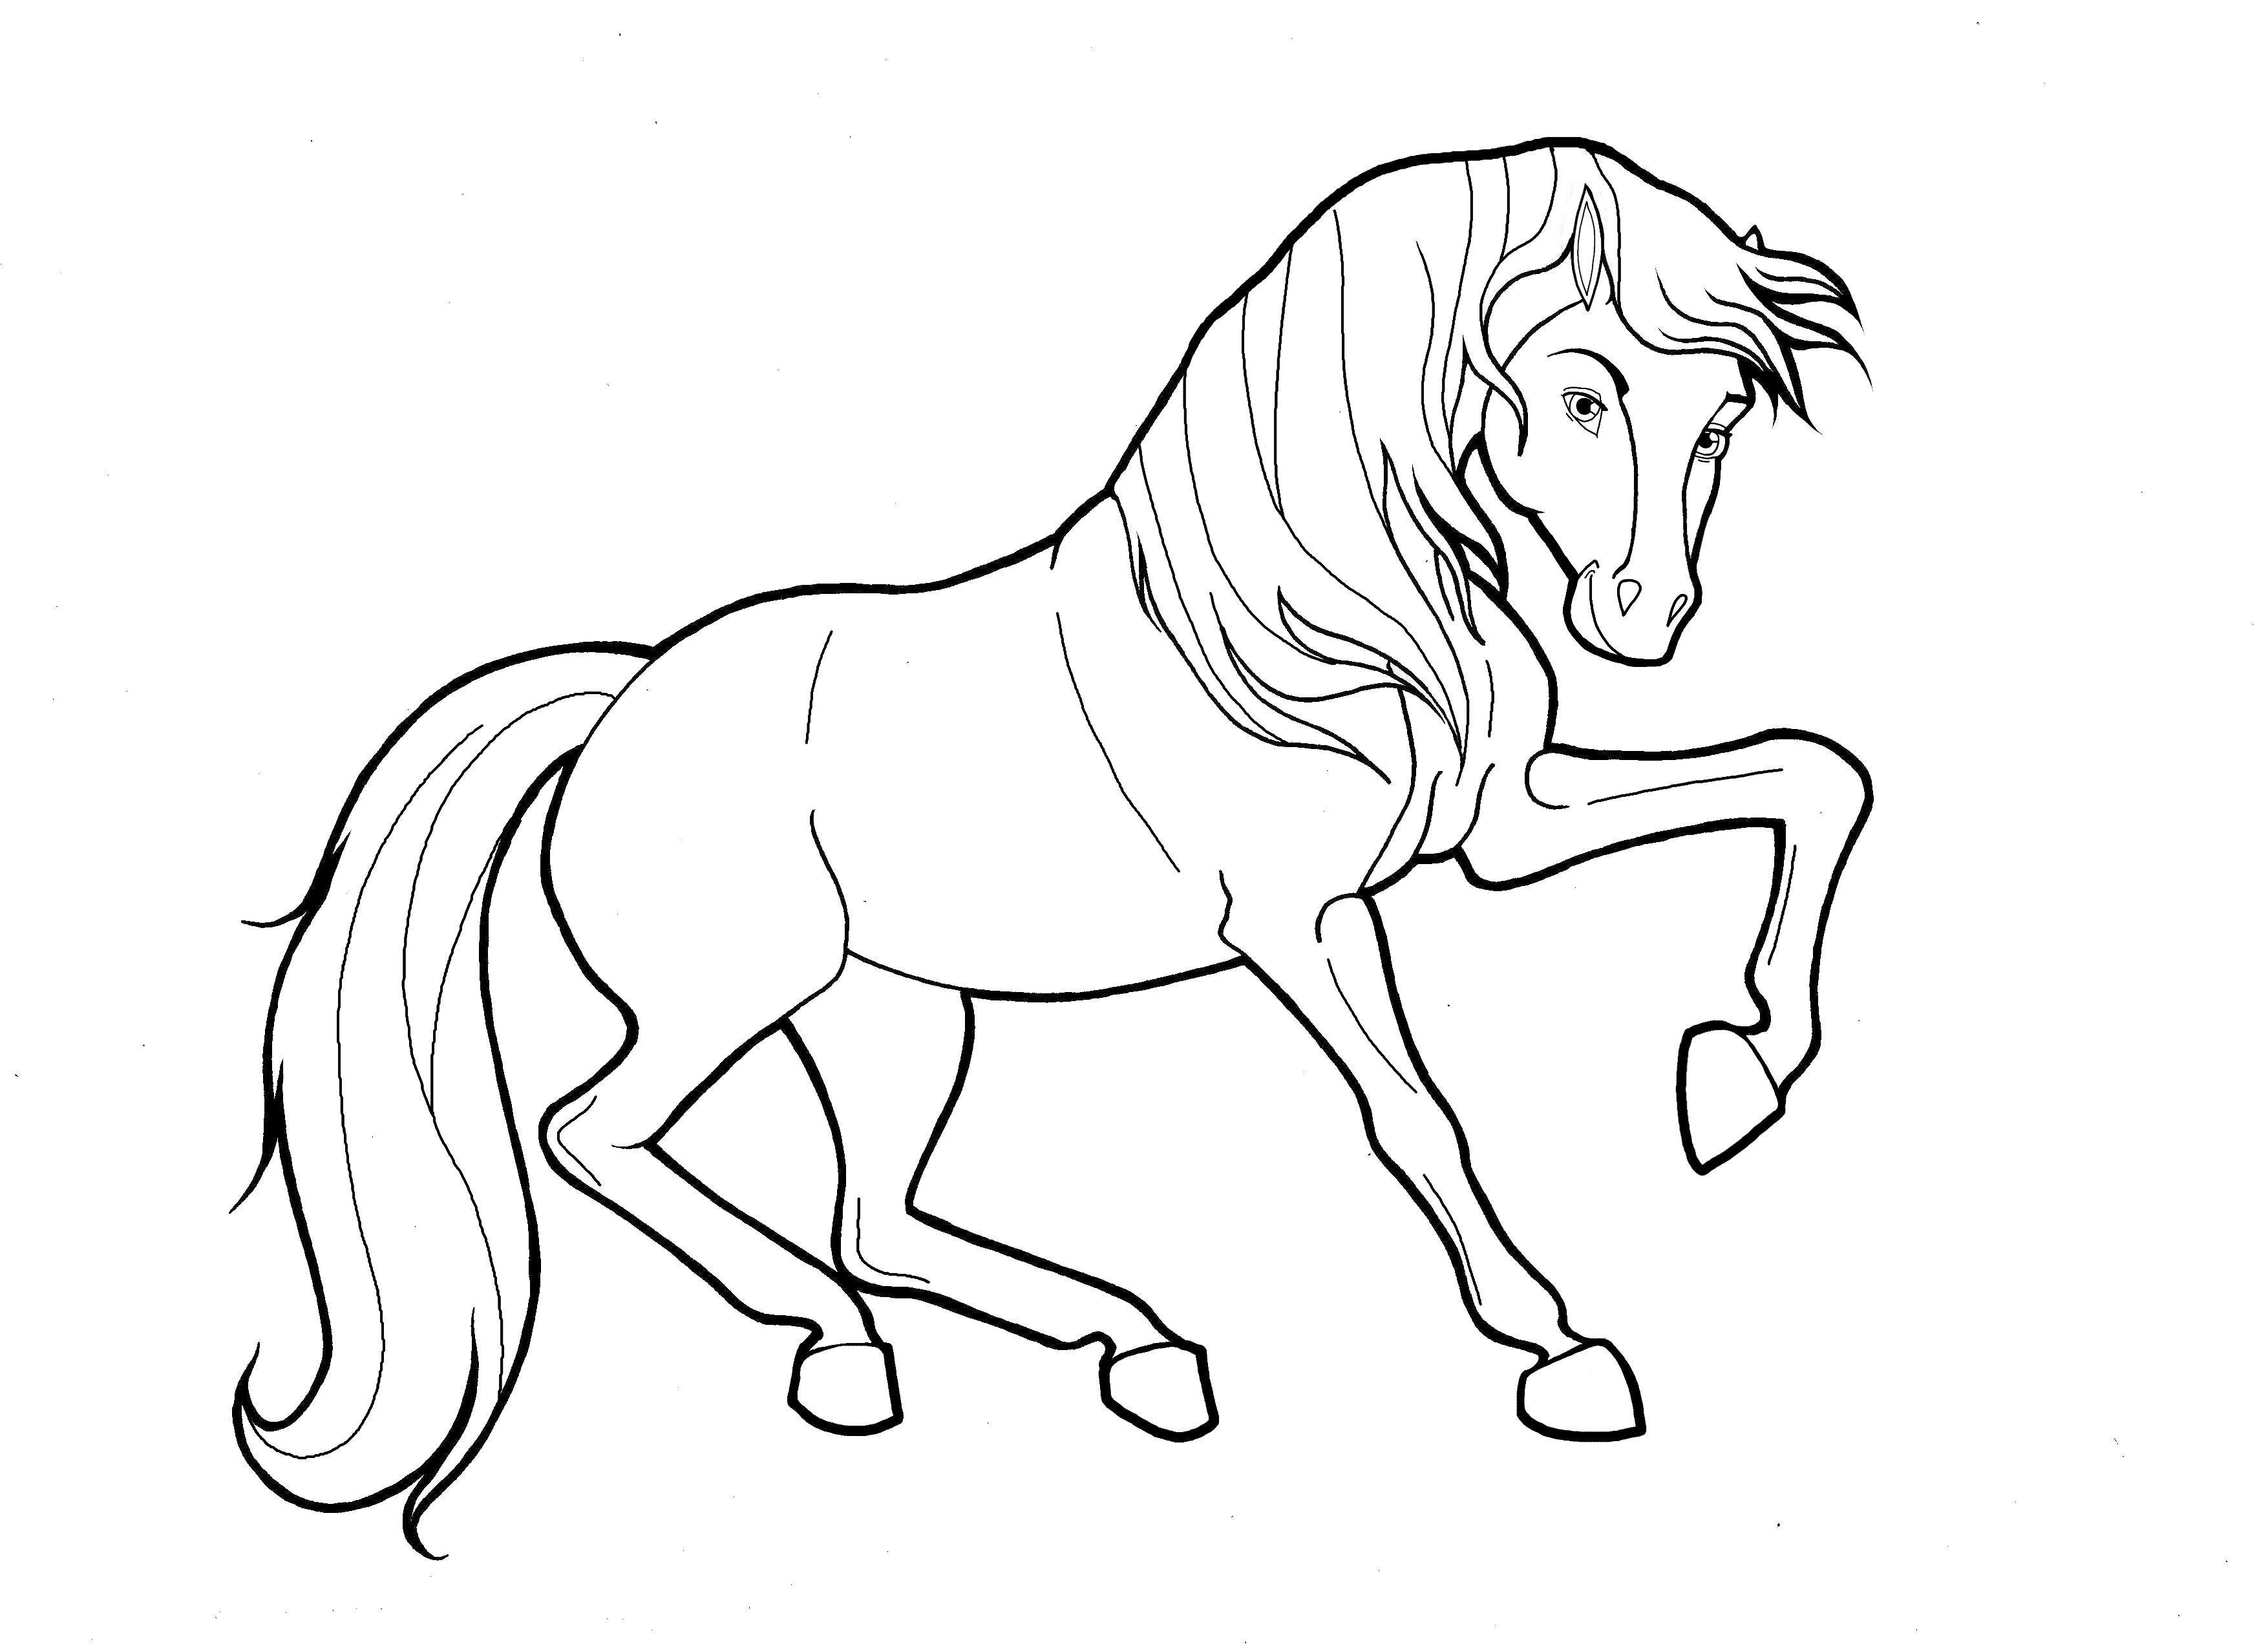 horses to print fun horse coloring pages for your kids printable to horses print